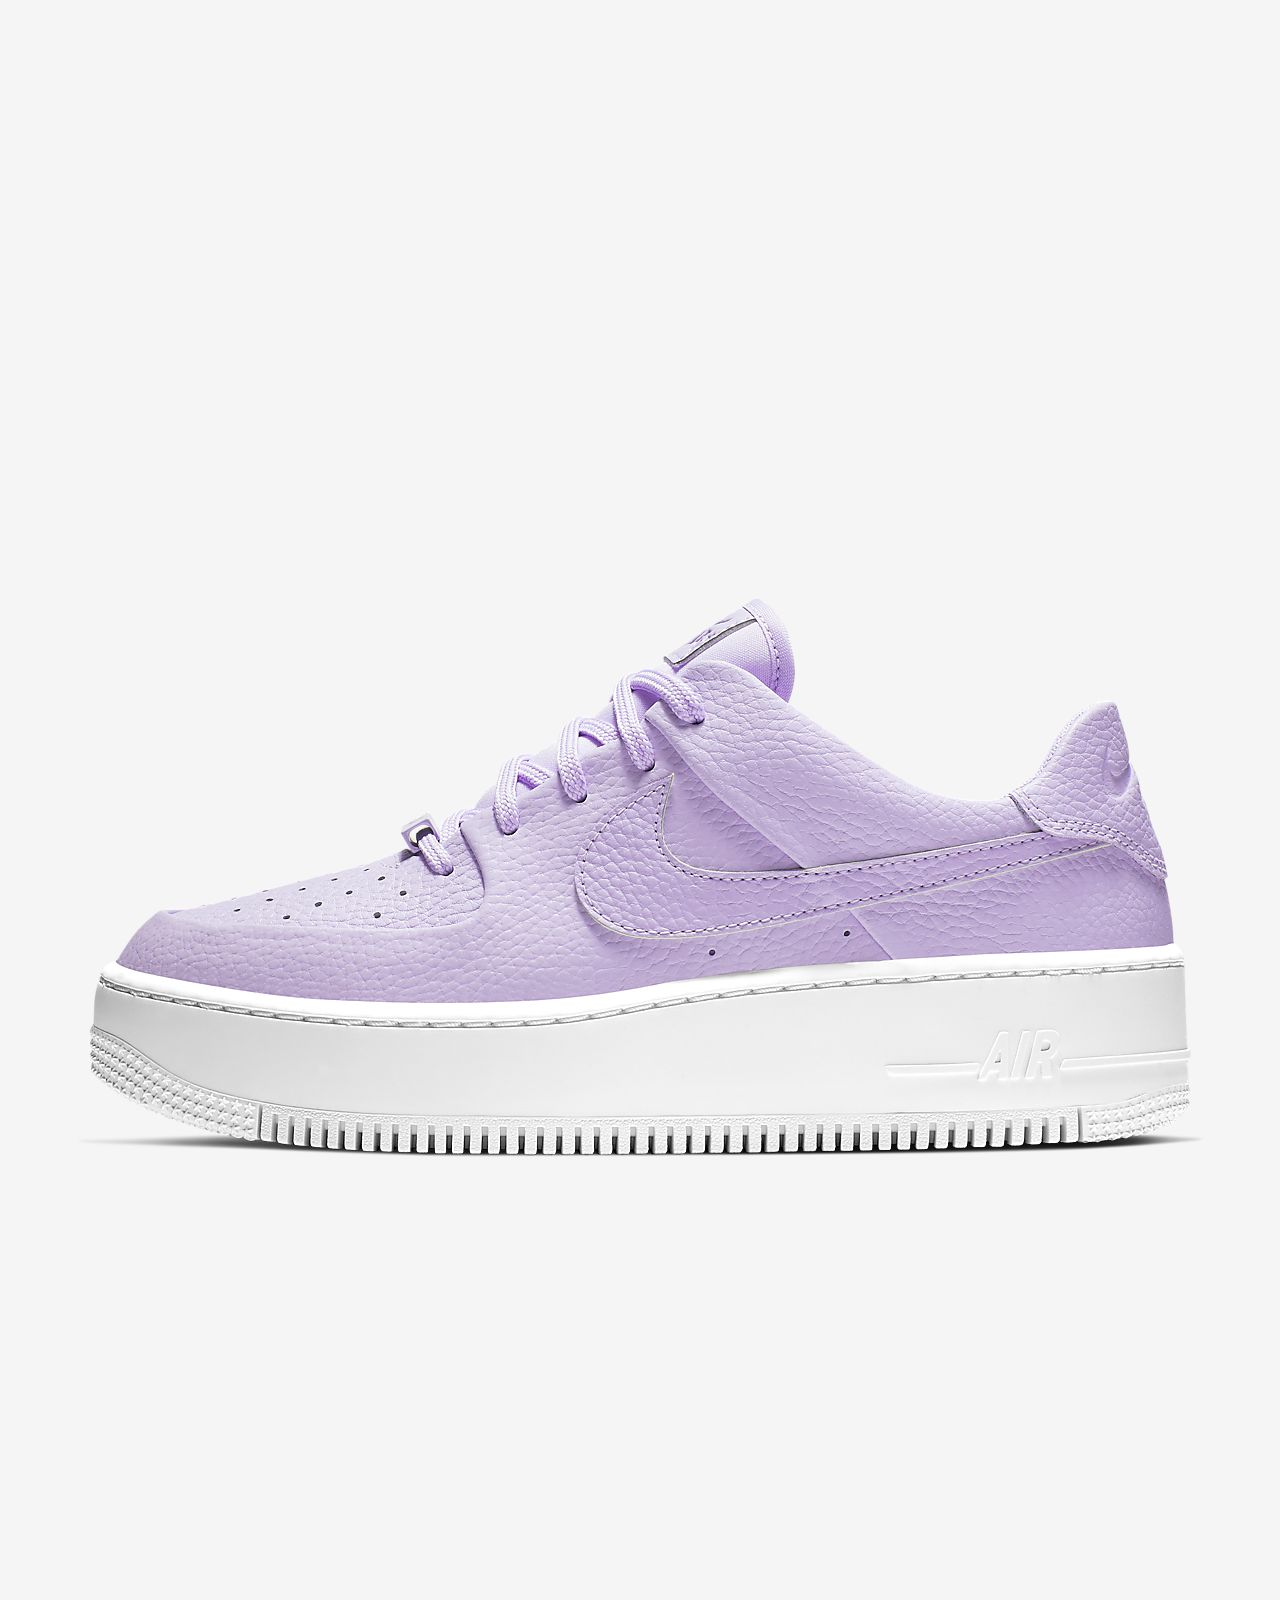 official photos cb145 ec70d ... Chaussure Nike Air Force 1 Sage Low pour Femme